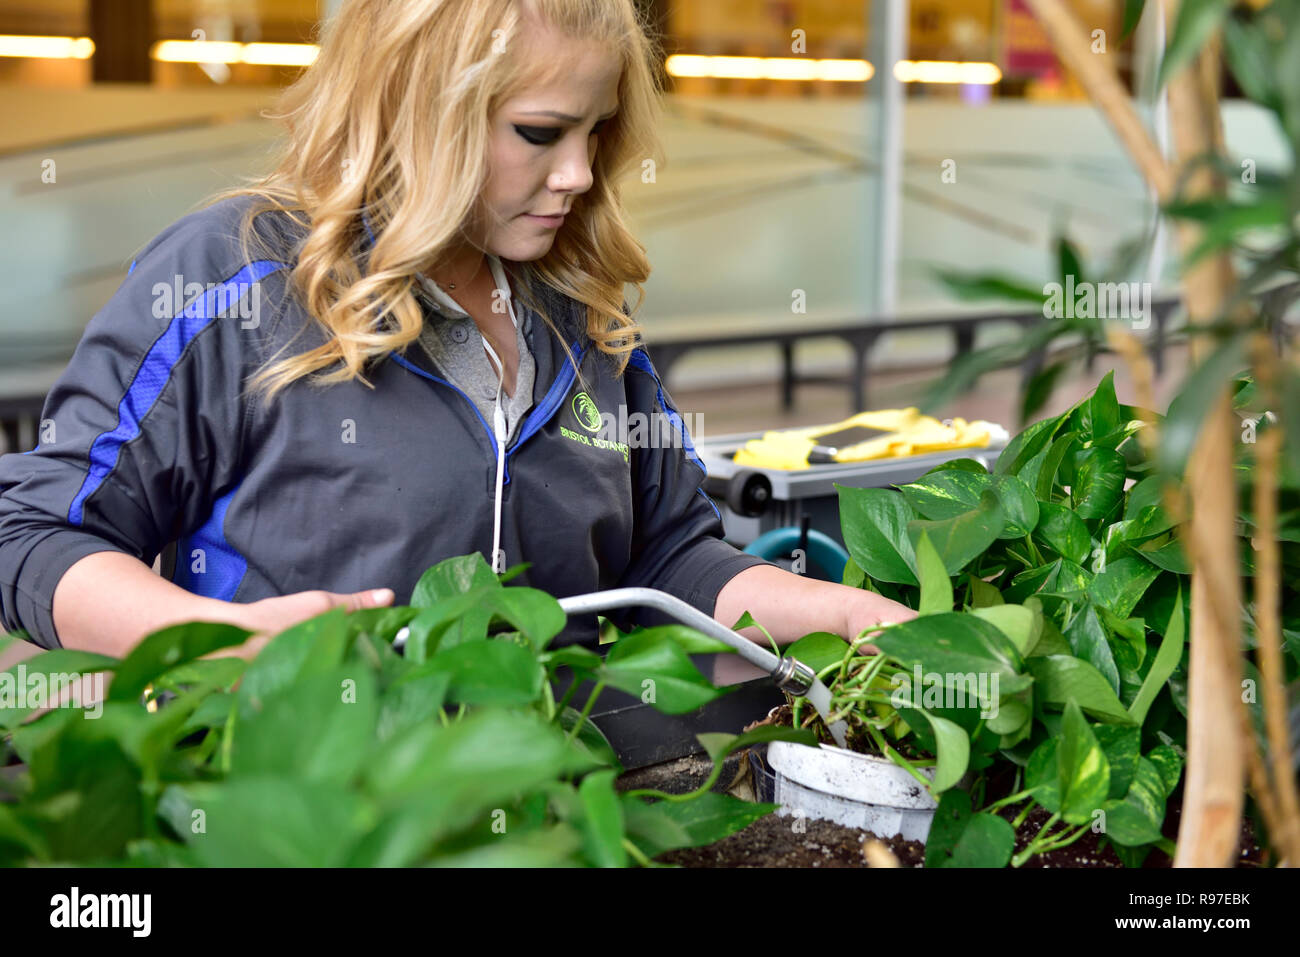 Young woman watering and tending to indoor plants in a commercial building - Stock Image